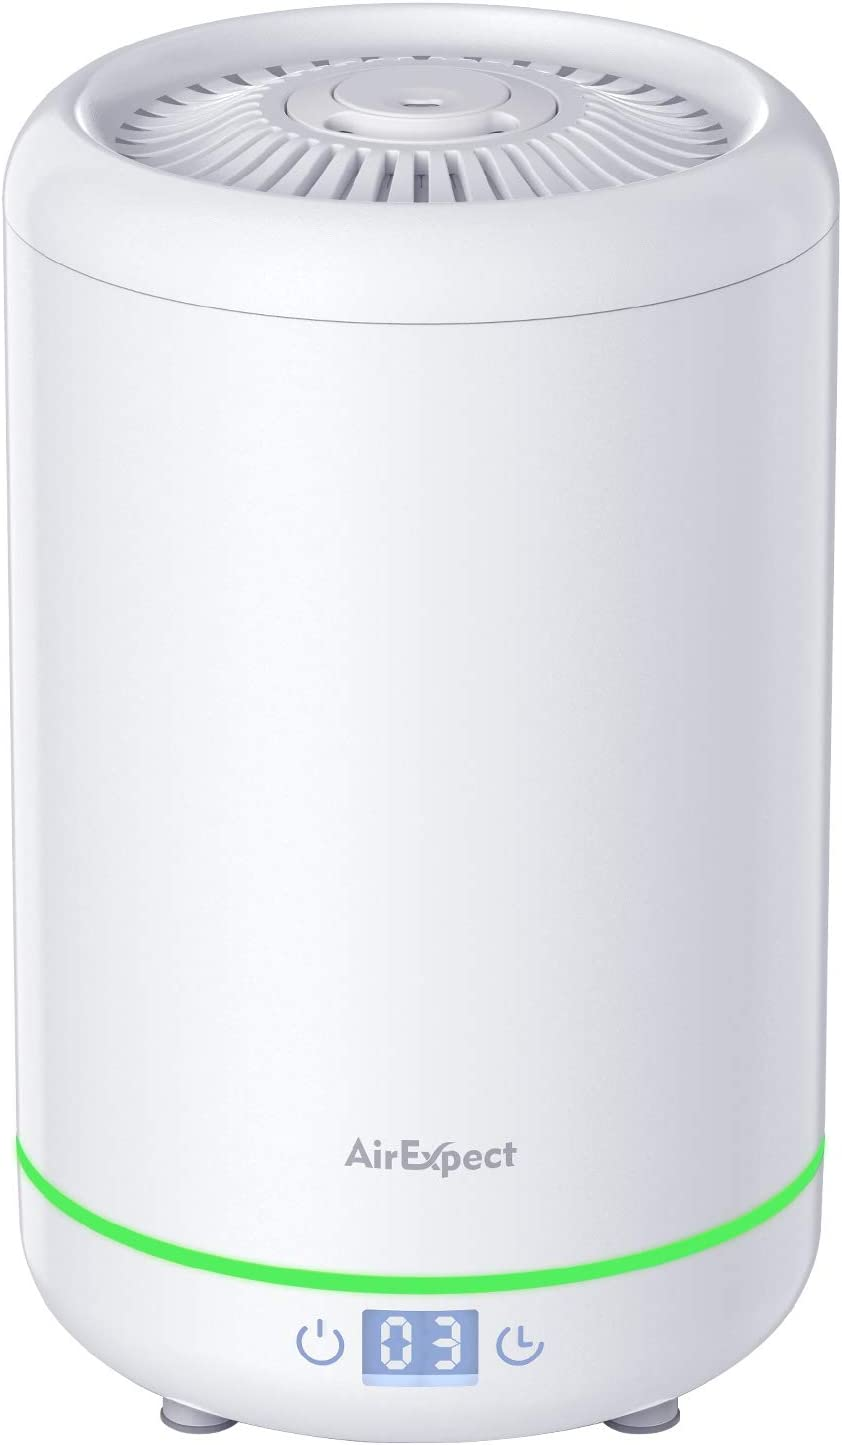 AirExpect Cool Mist Humidifier for Bedroom